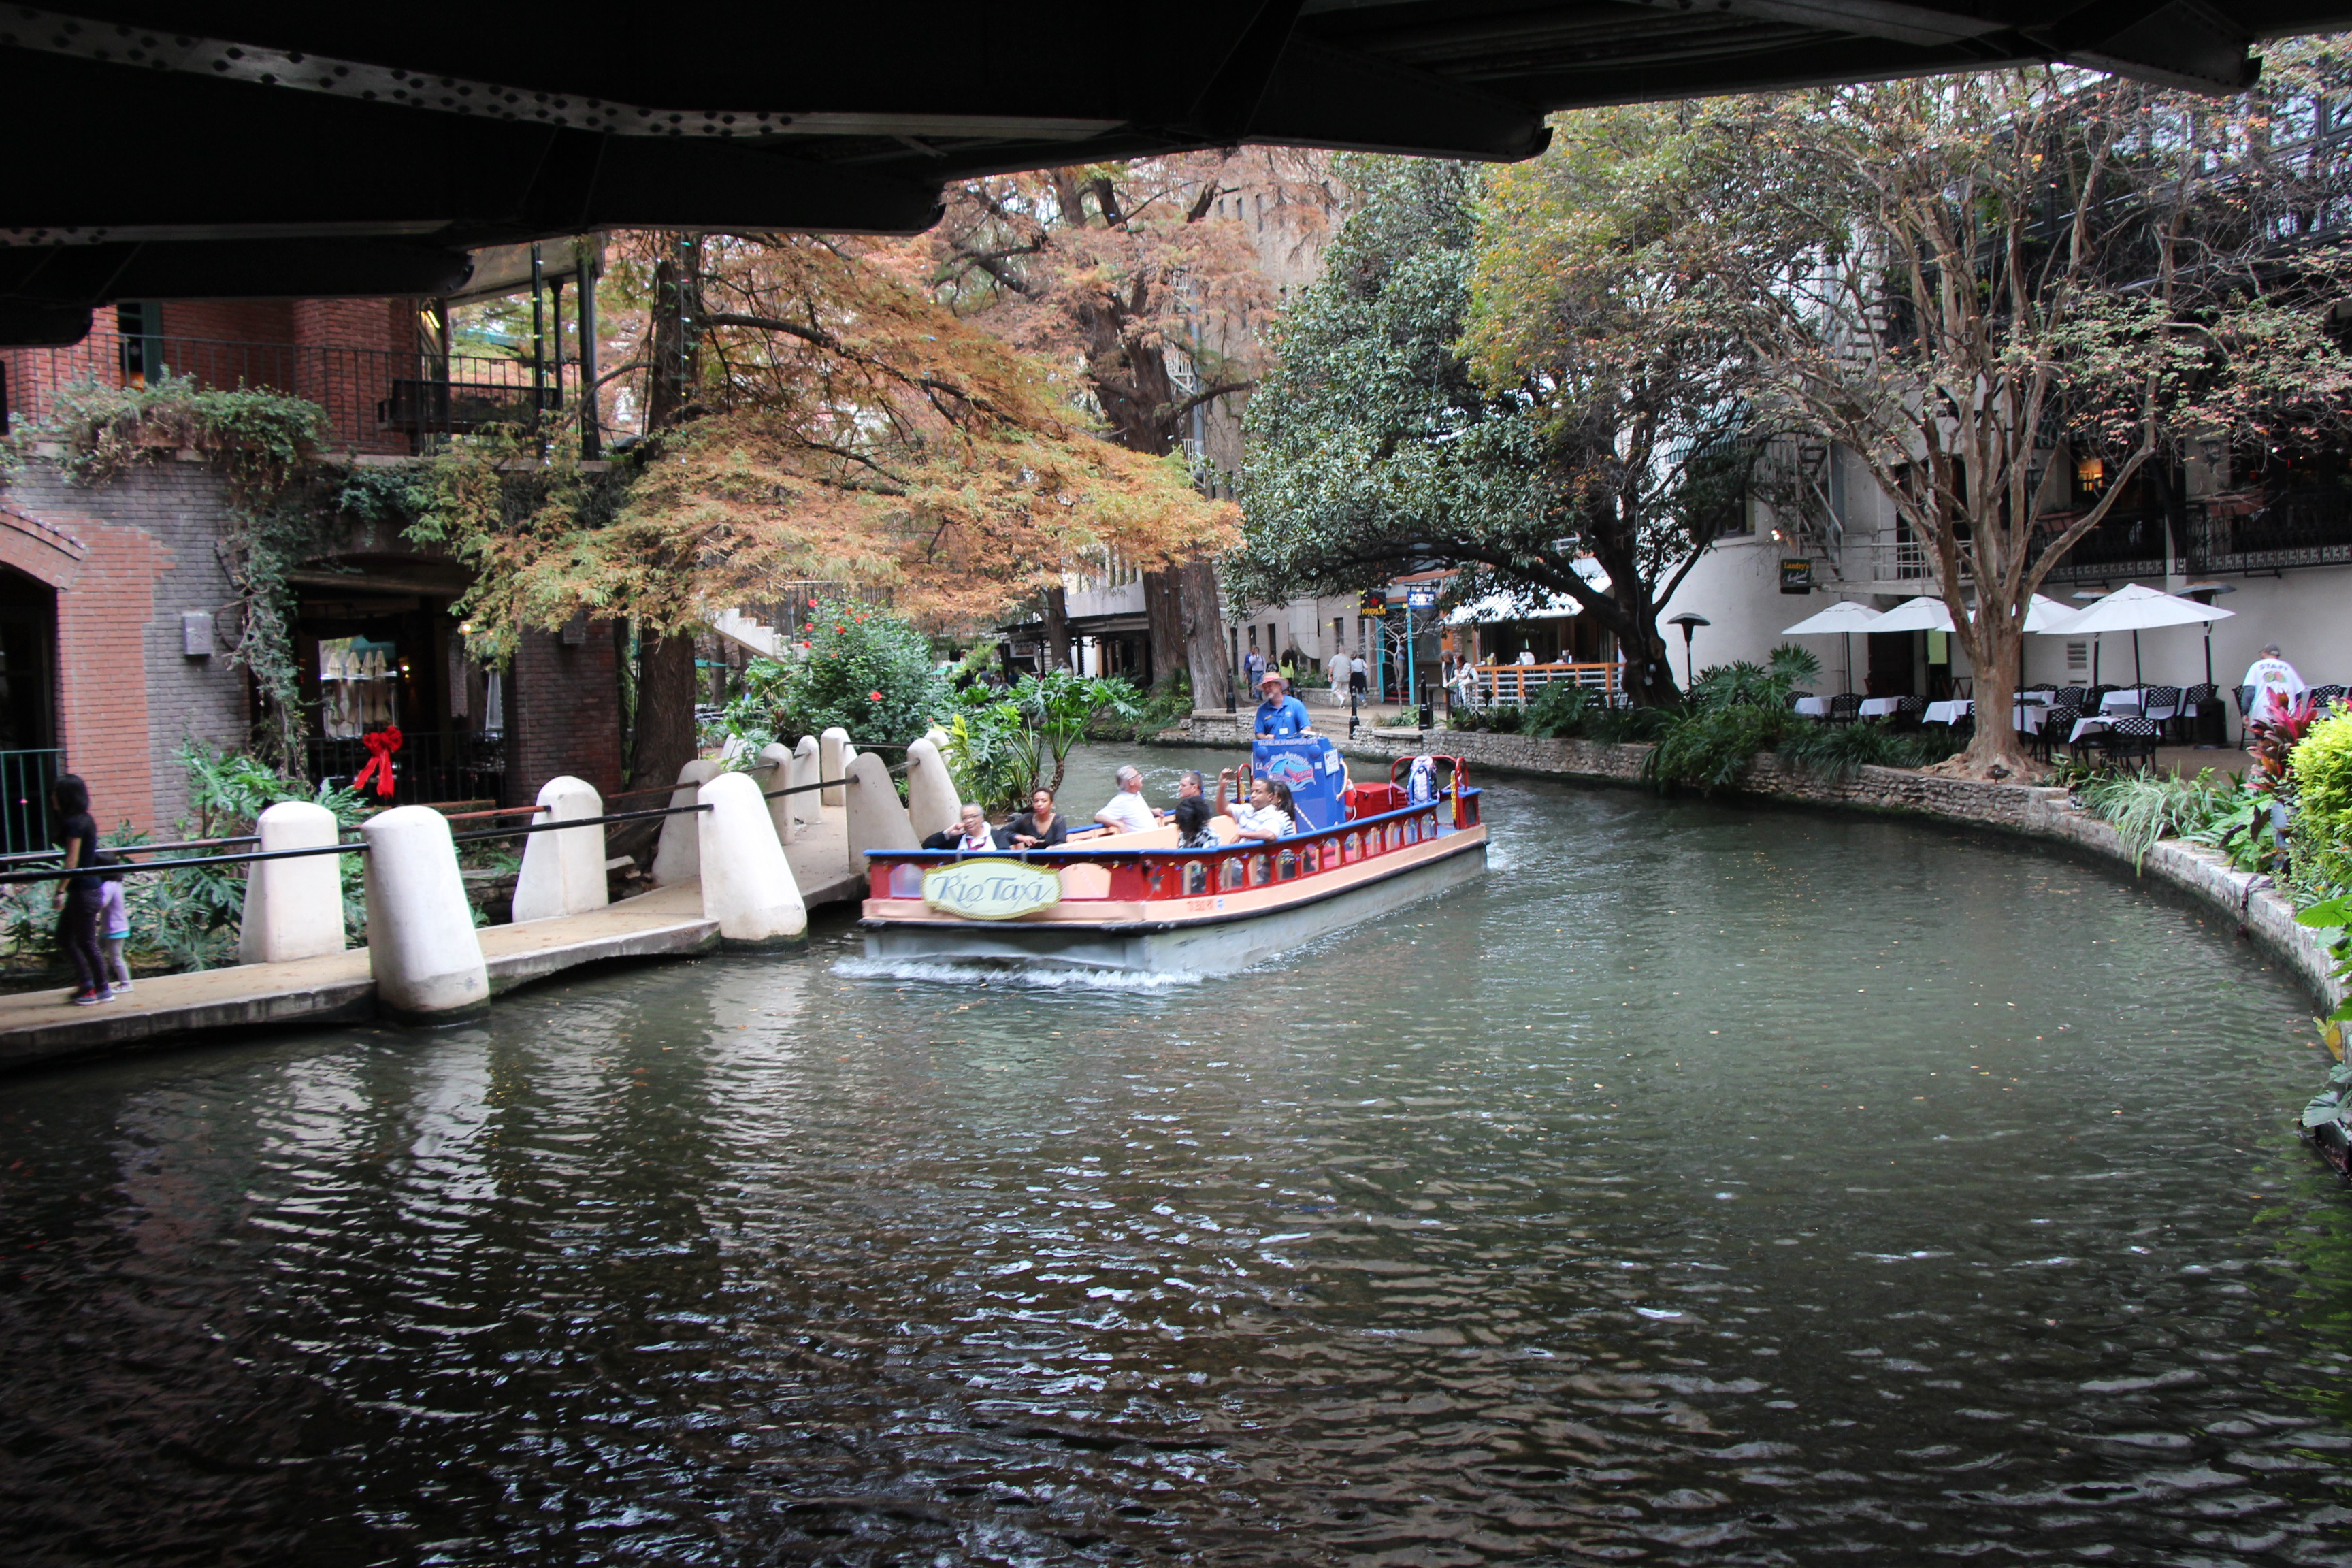 A tour boat on San Antonio's River Walk